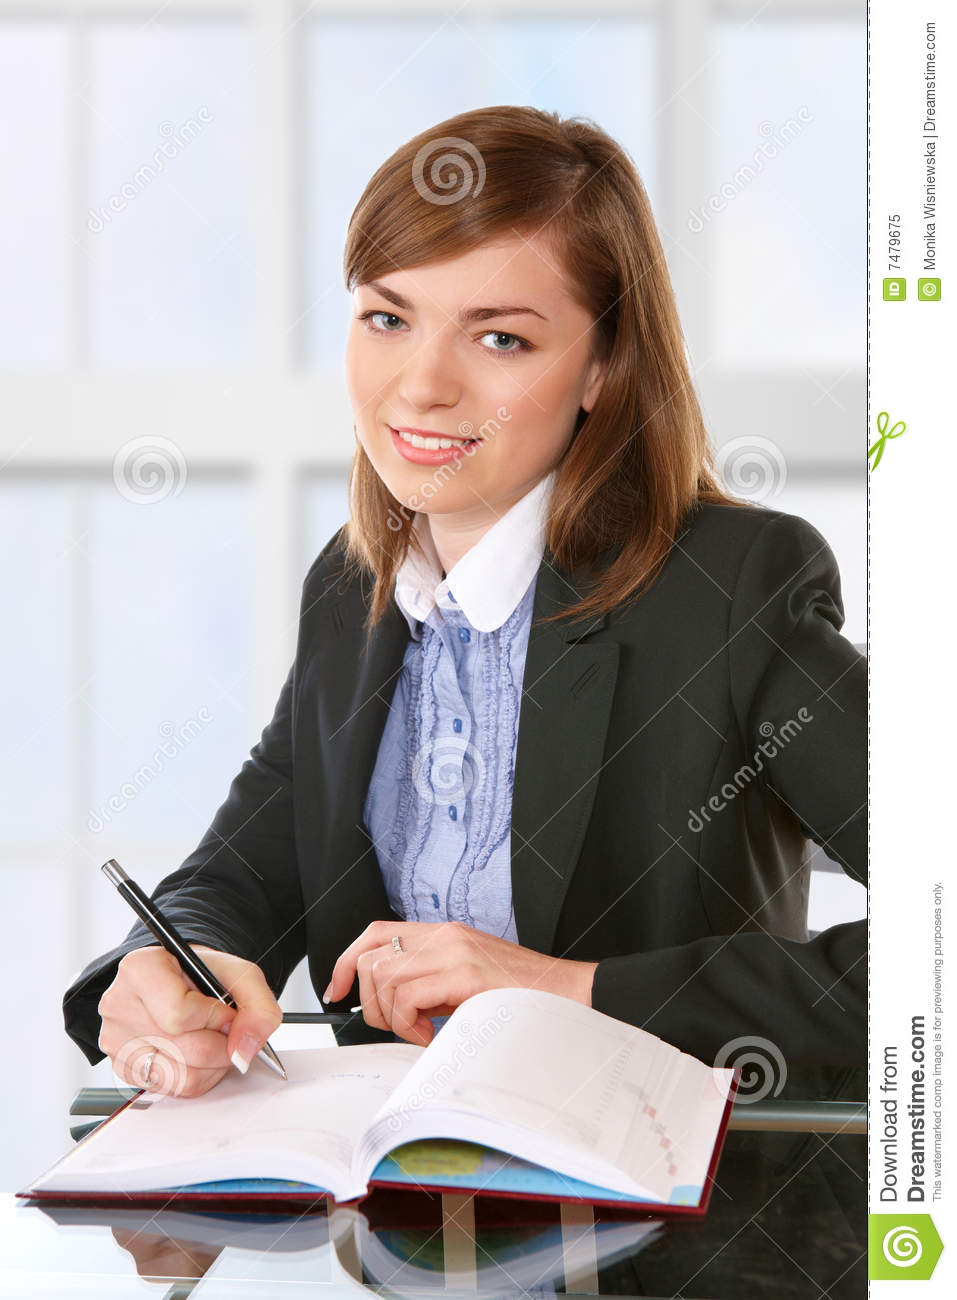 working woman essay Discrimination term papers (paper 13820) on discrimination against women : women were and still are discriminated in society discrimination, in a general sense, simply means making a decision based on some distinctive fac term paper 13820.